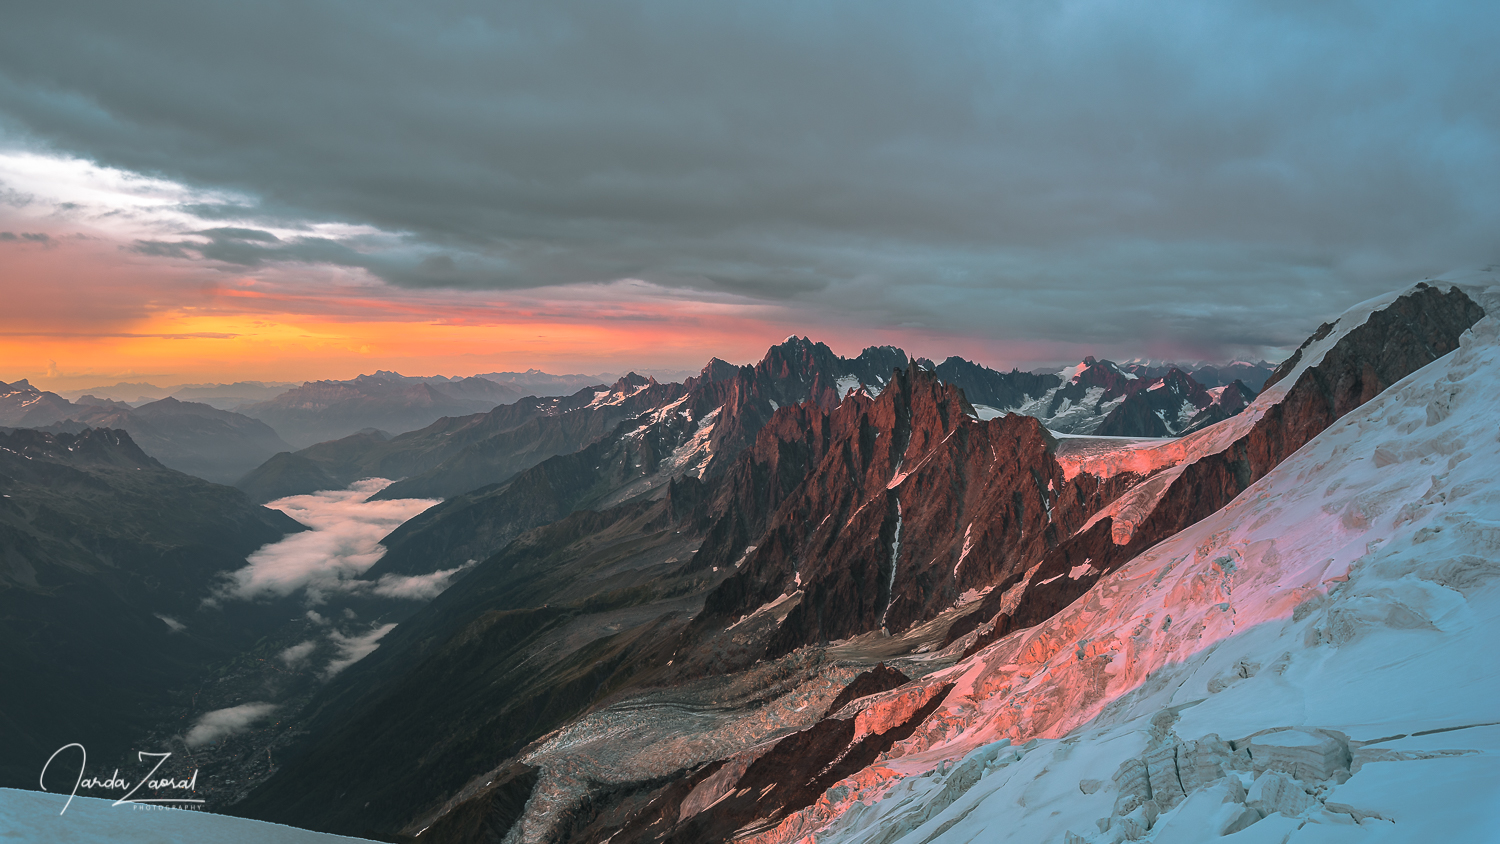 Sunset watching at the Gouter Hut